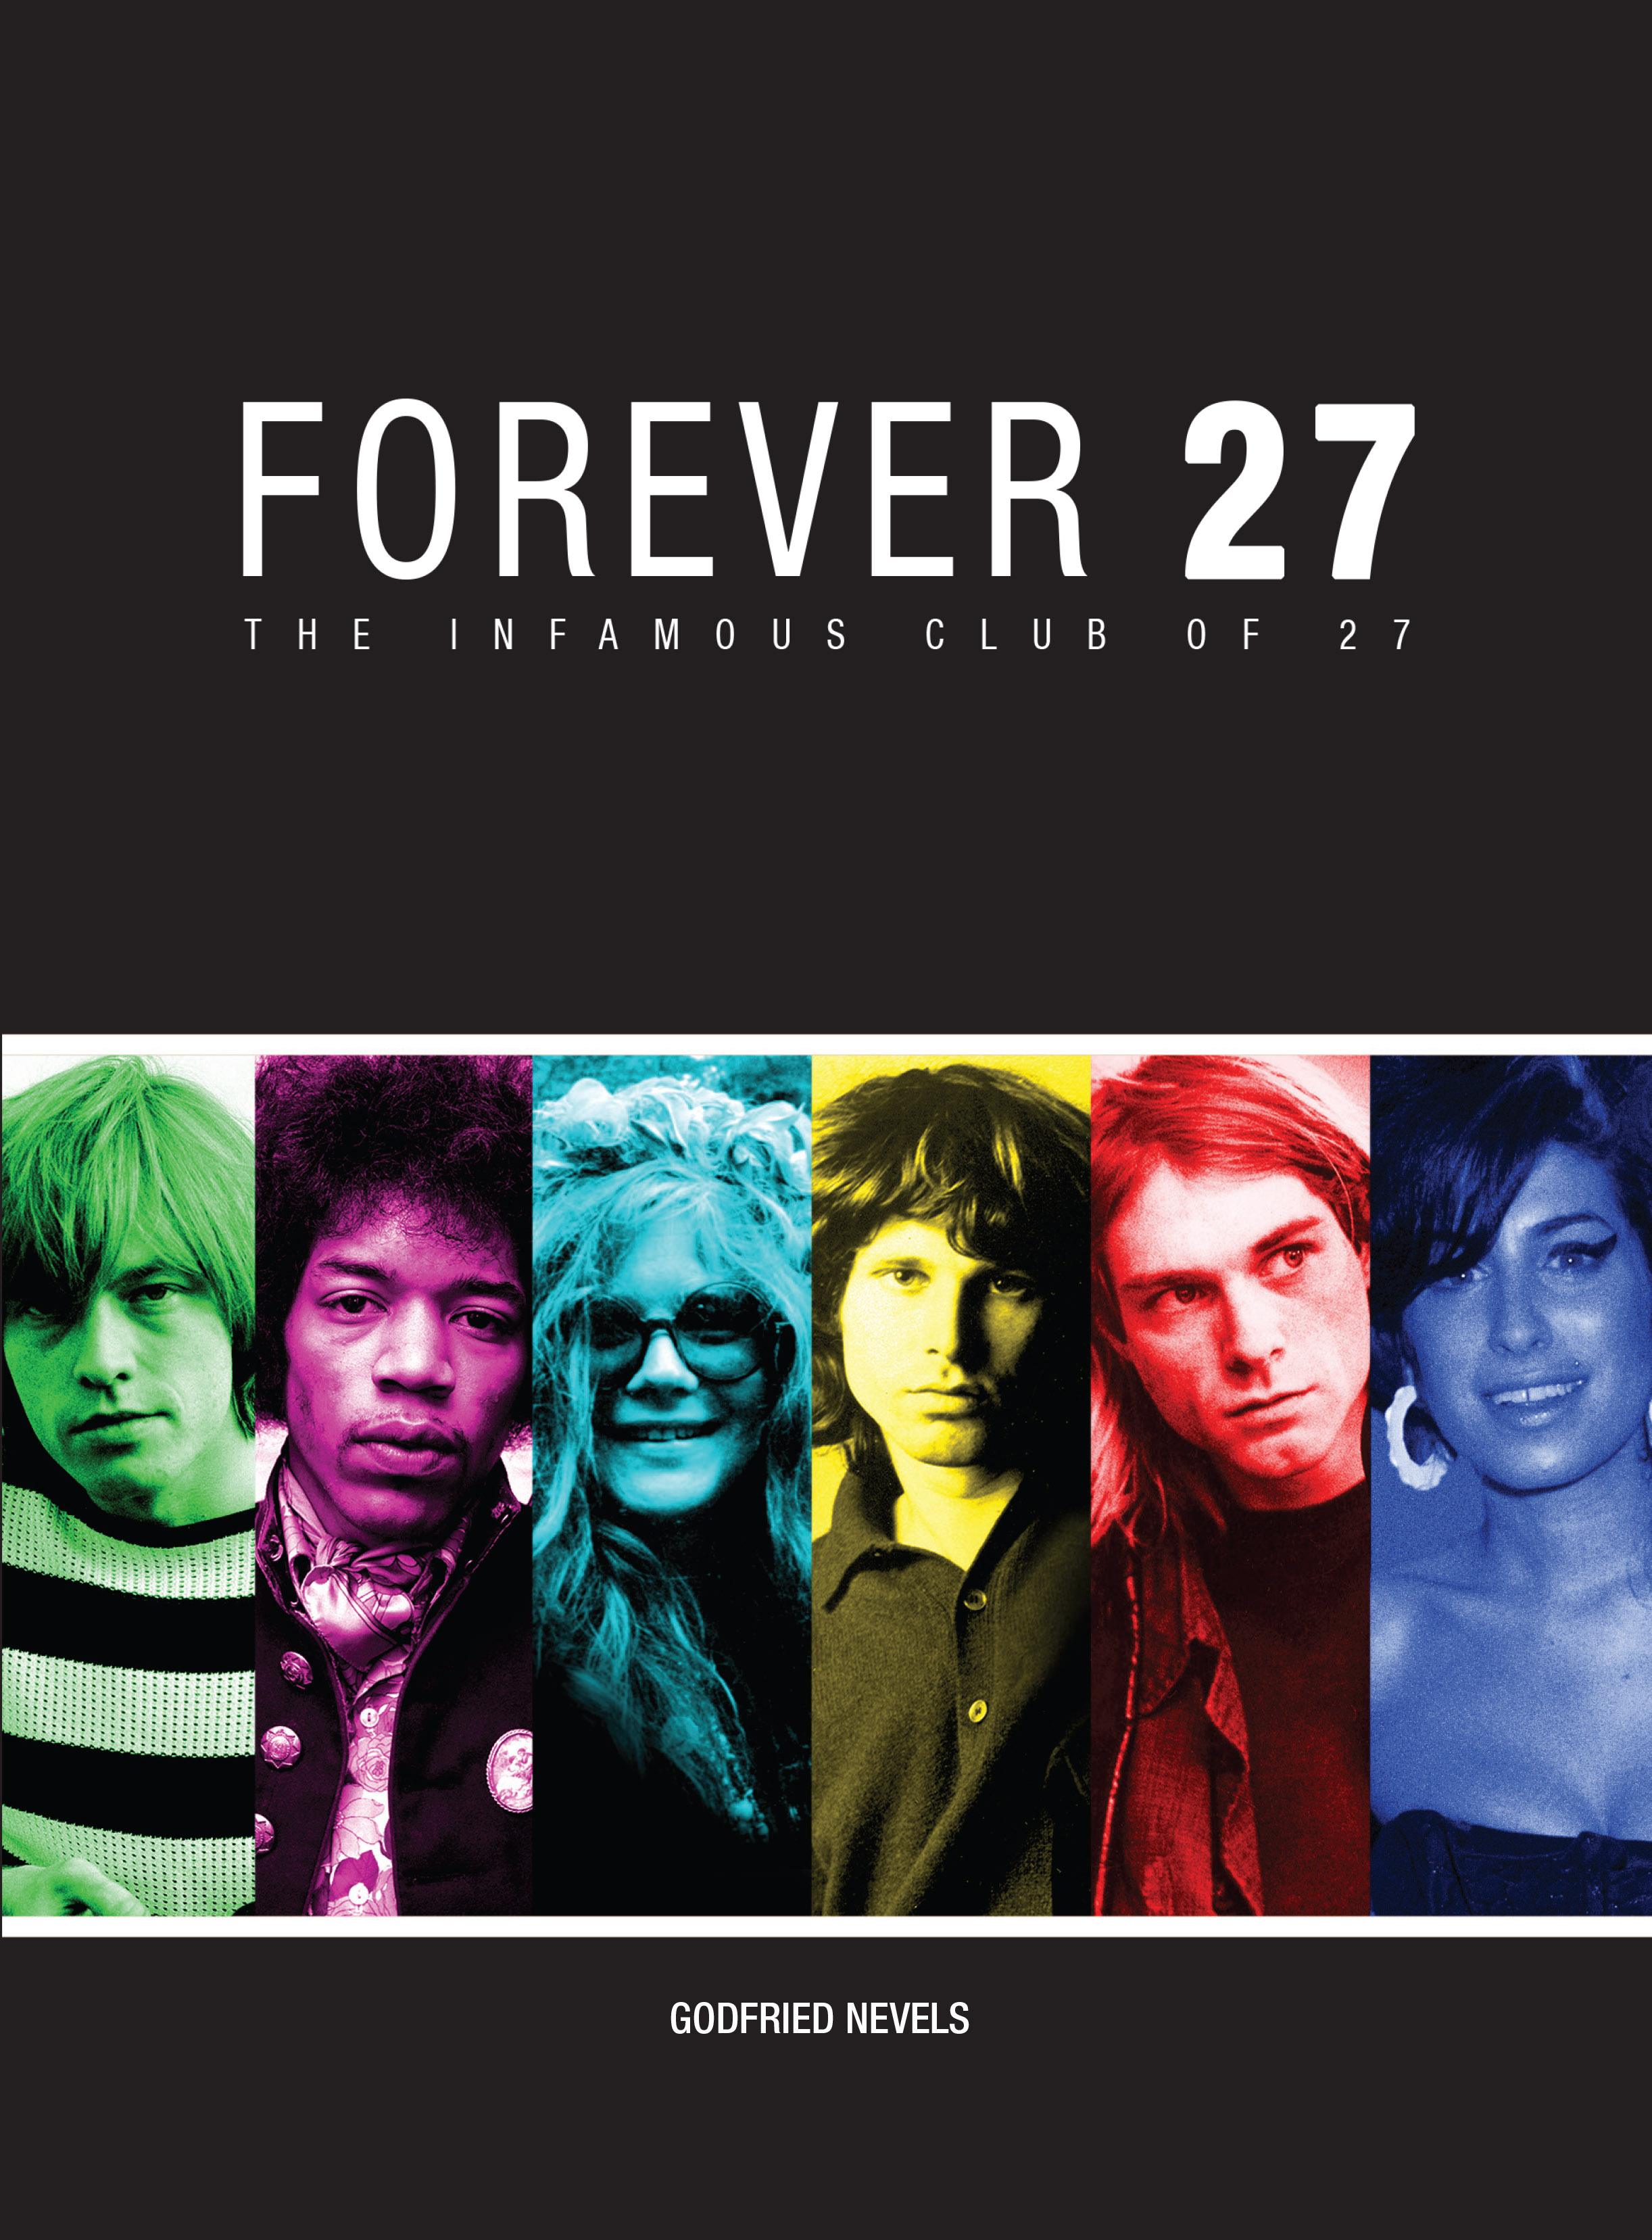 Forever 27 - Cover 2D